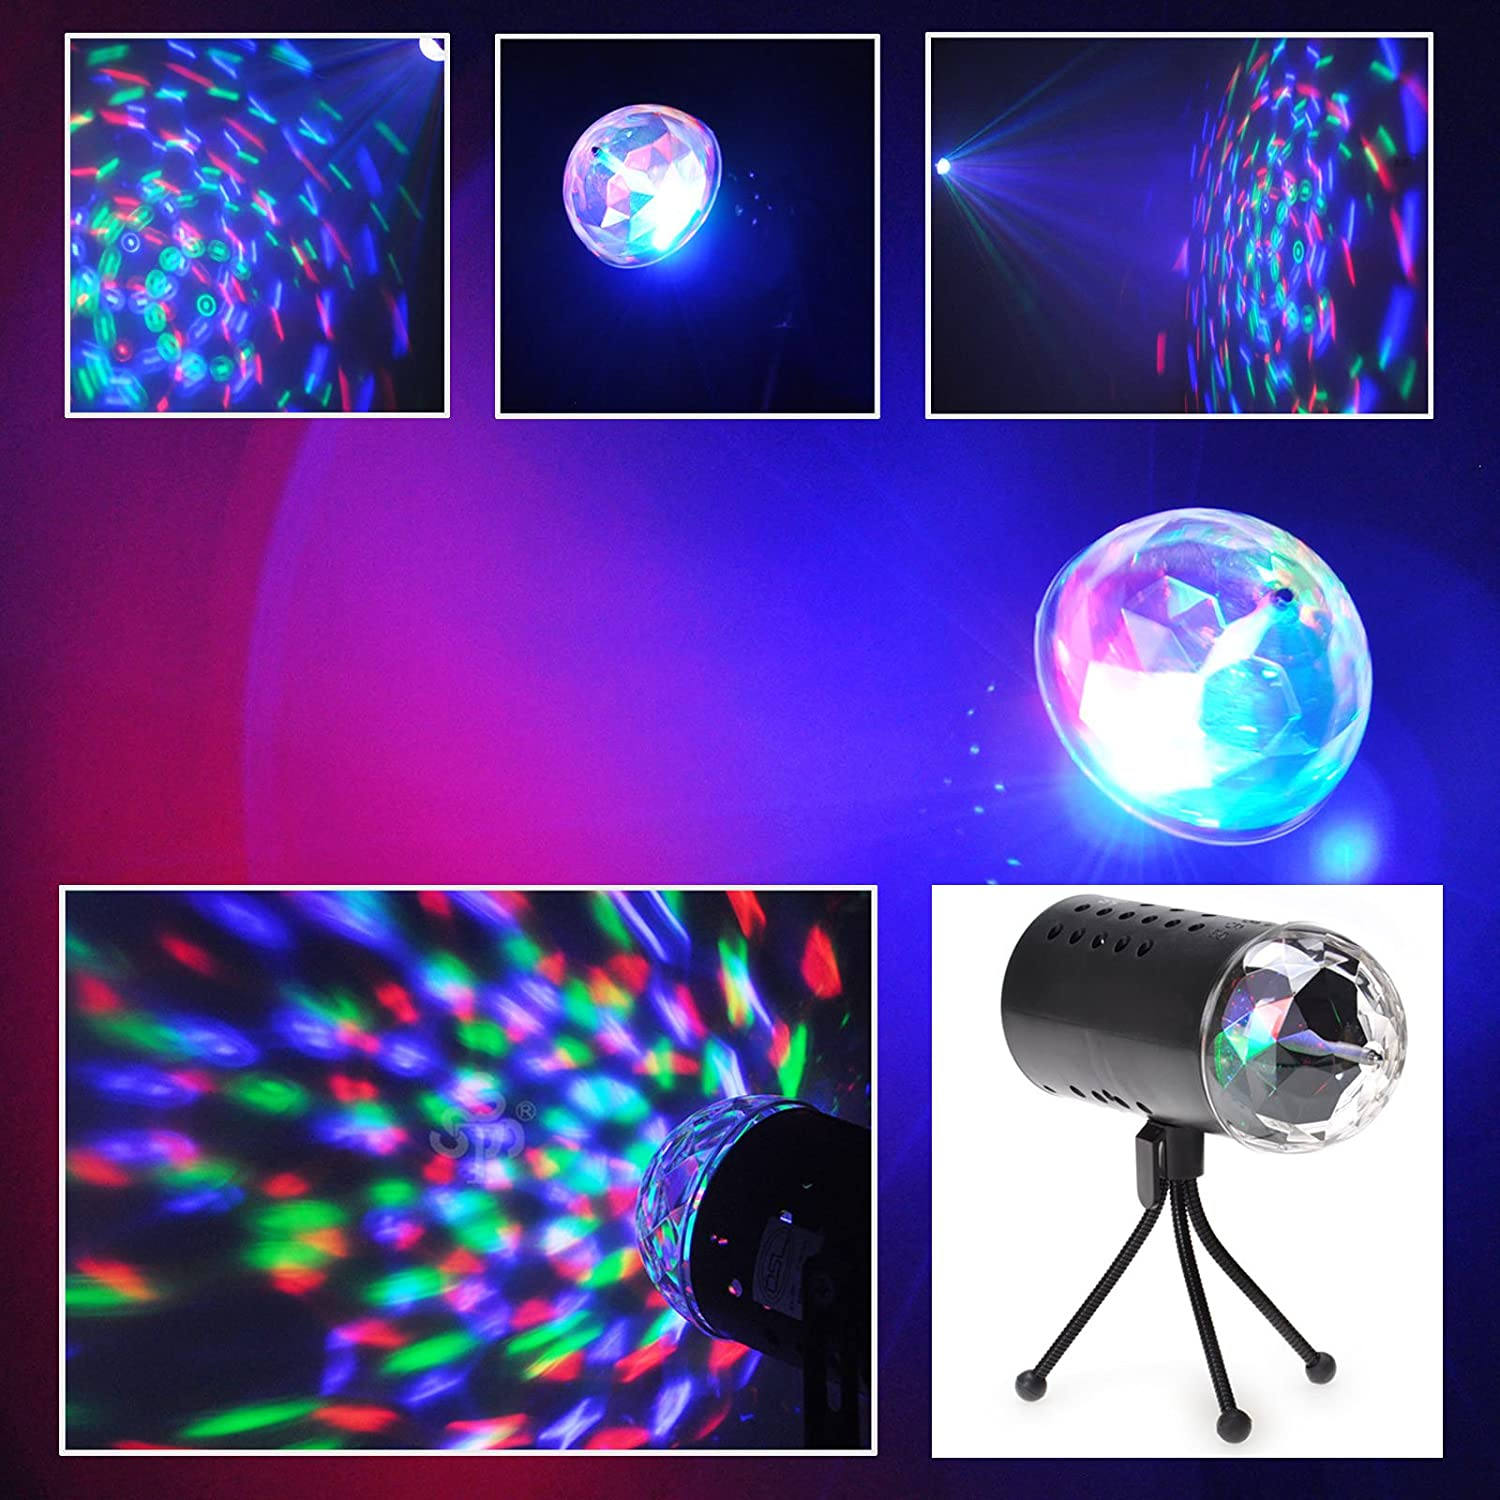 christmas outdoor garden led lamp landscape showers wholesale light for projector waterproof laser disco lighting grass product star holiday decoration lights